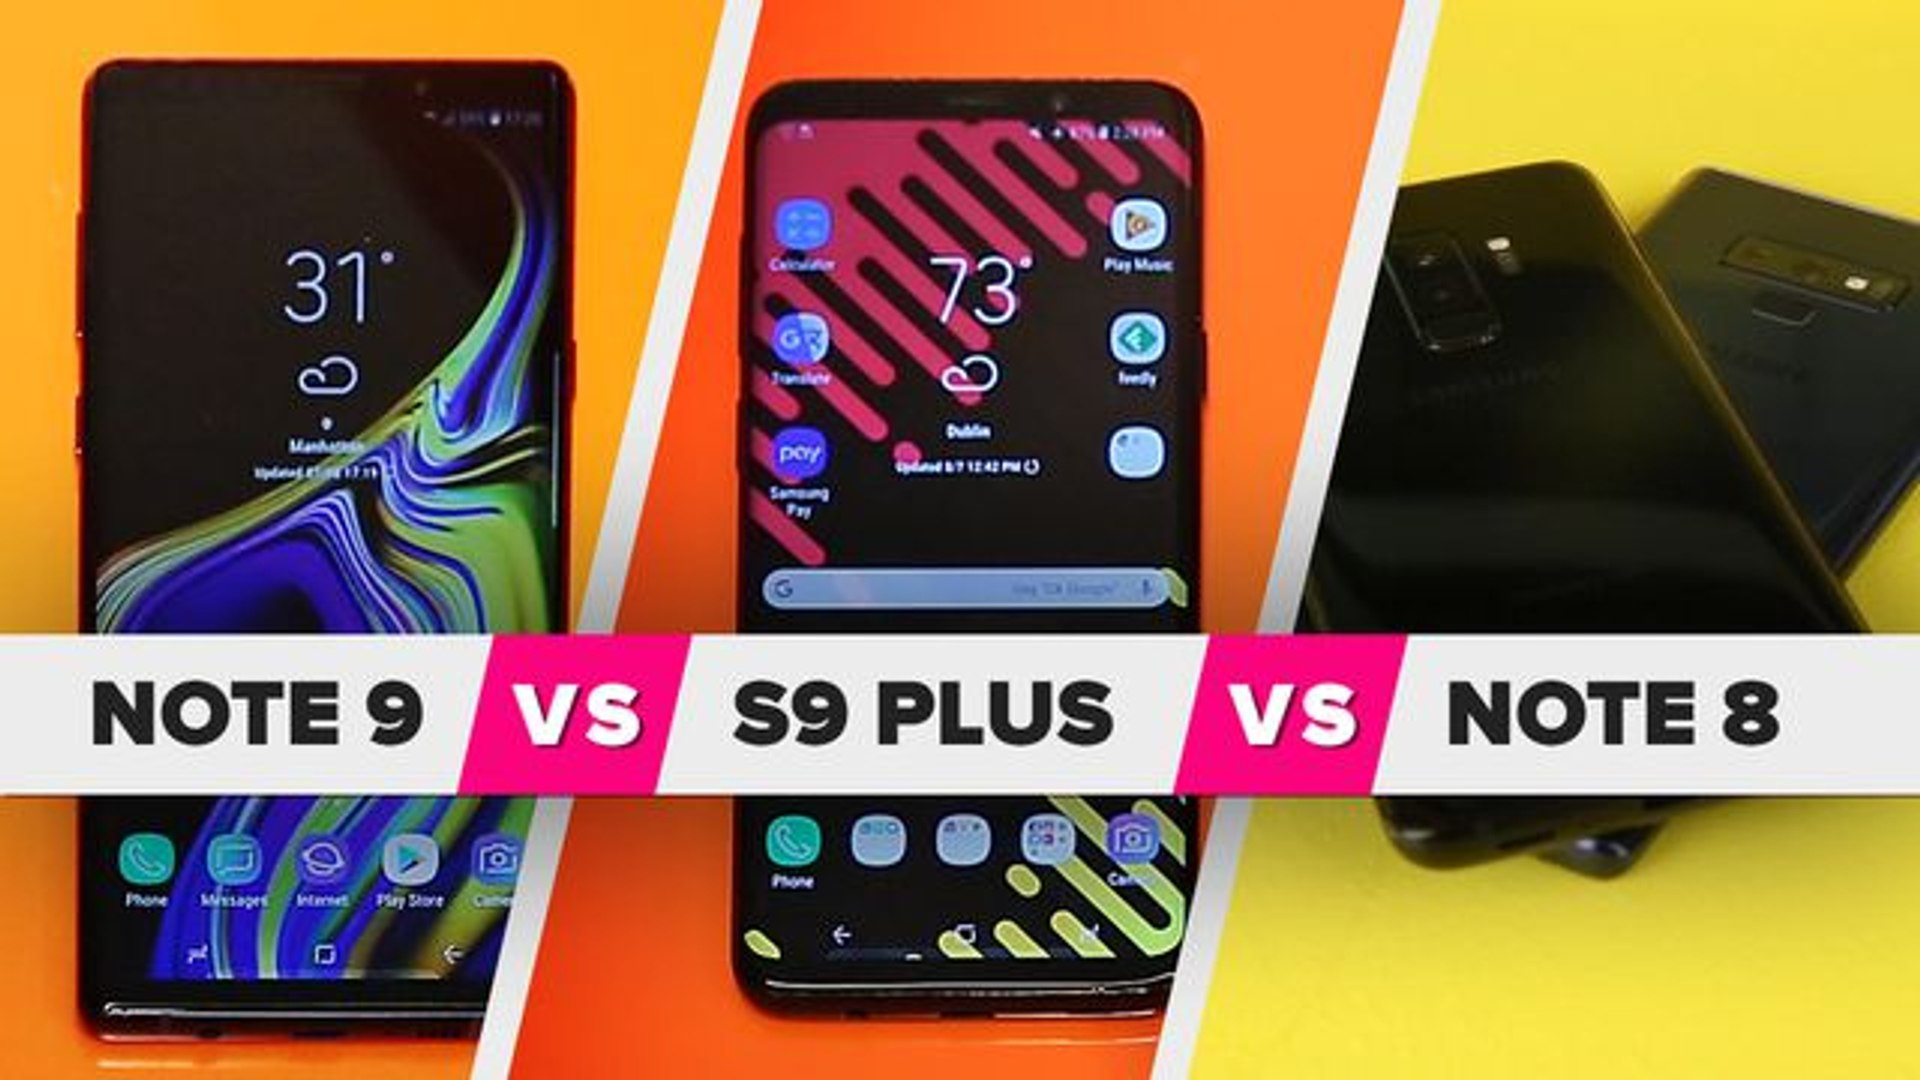 Galaxy Note 9 vs. S9 Plus vs. Note 8: What's new?